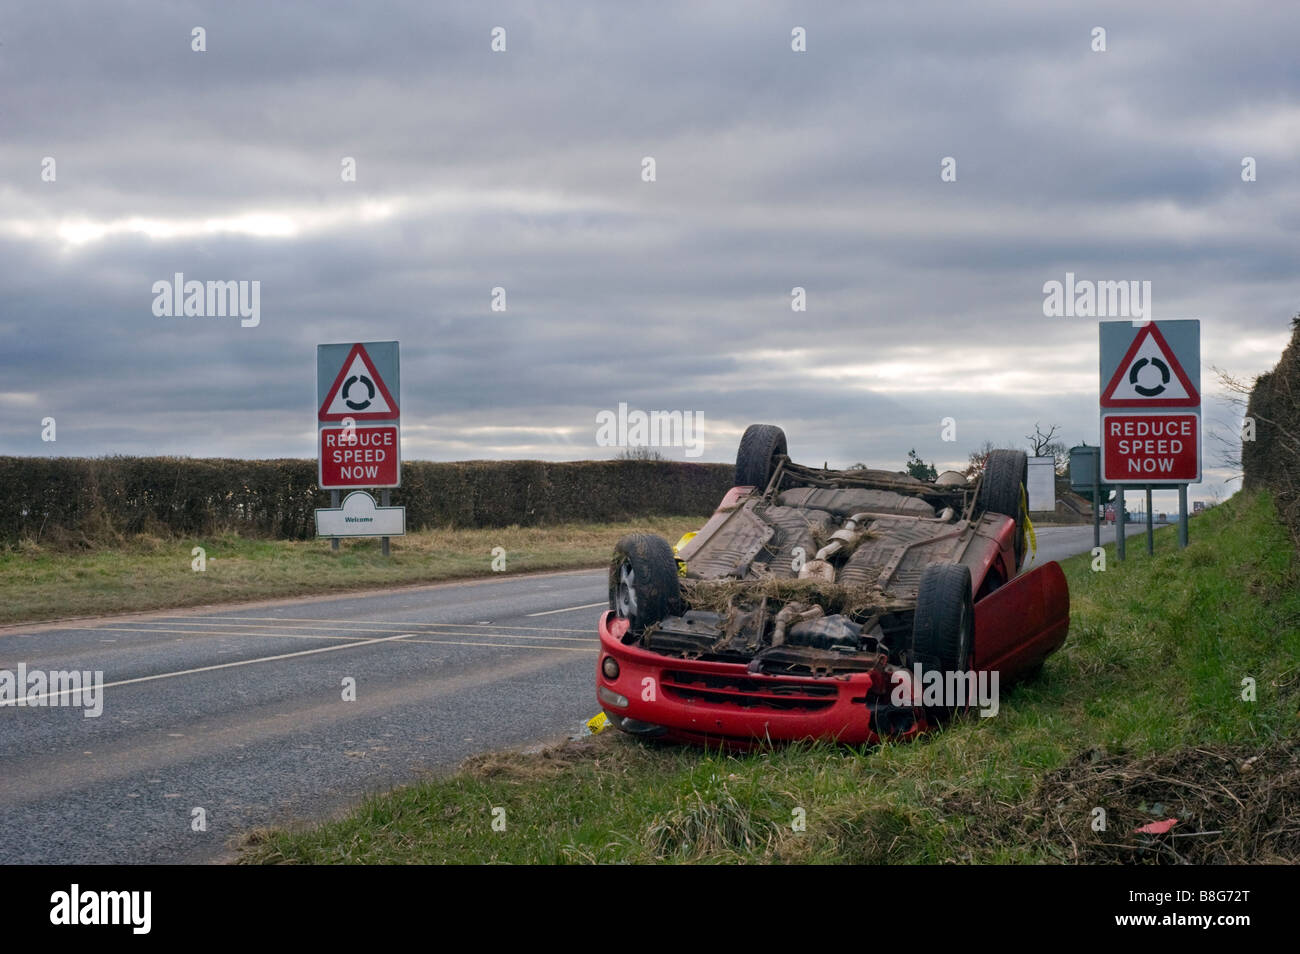 Car Crash Car Wreck Of Sports Car With Reduce Speed Signs In Stock